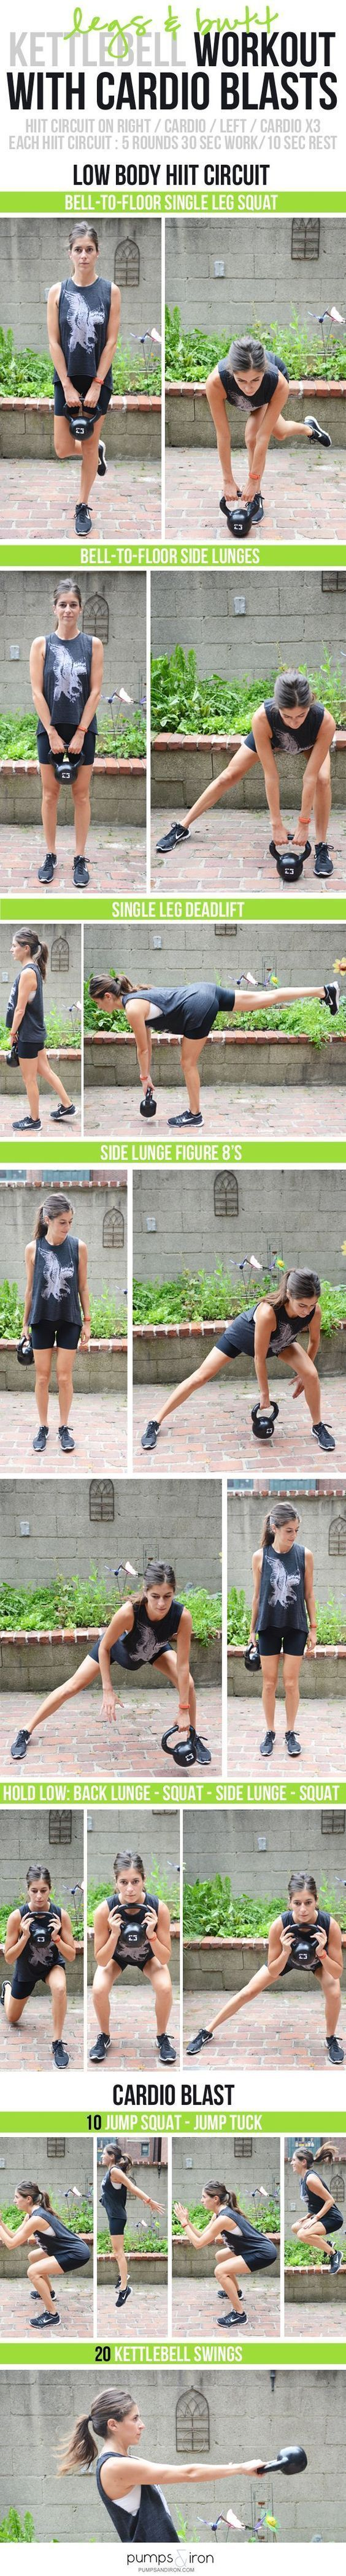 kettlebell workout with cardio  | Posted By: AdvancedWeightLossTips.com